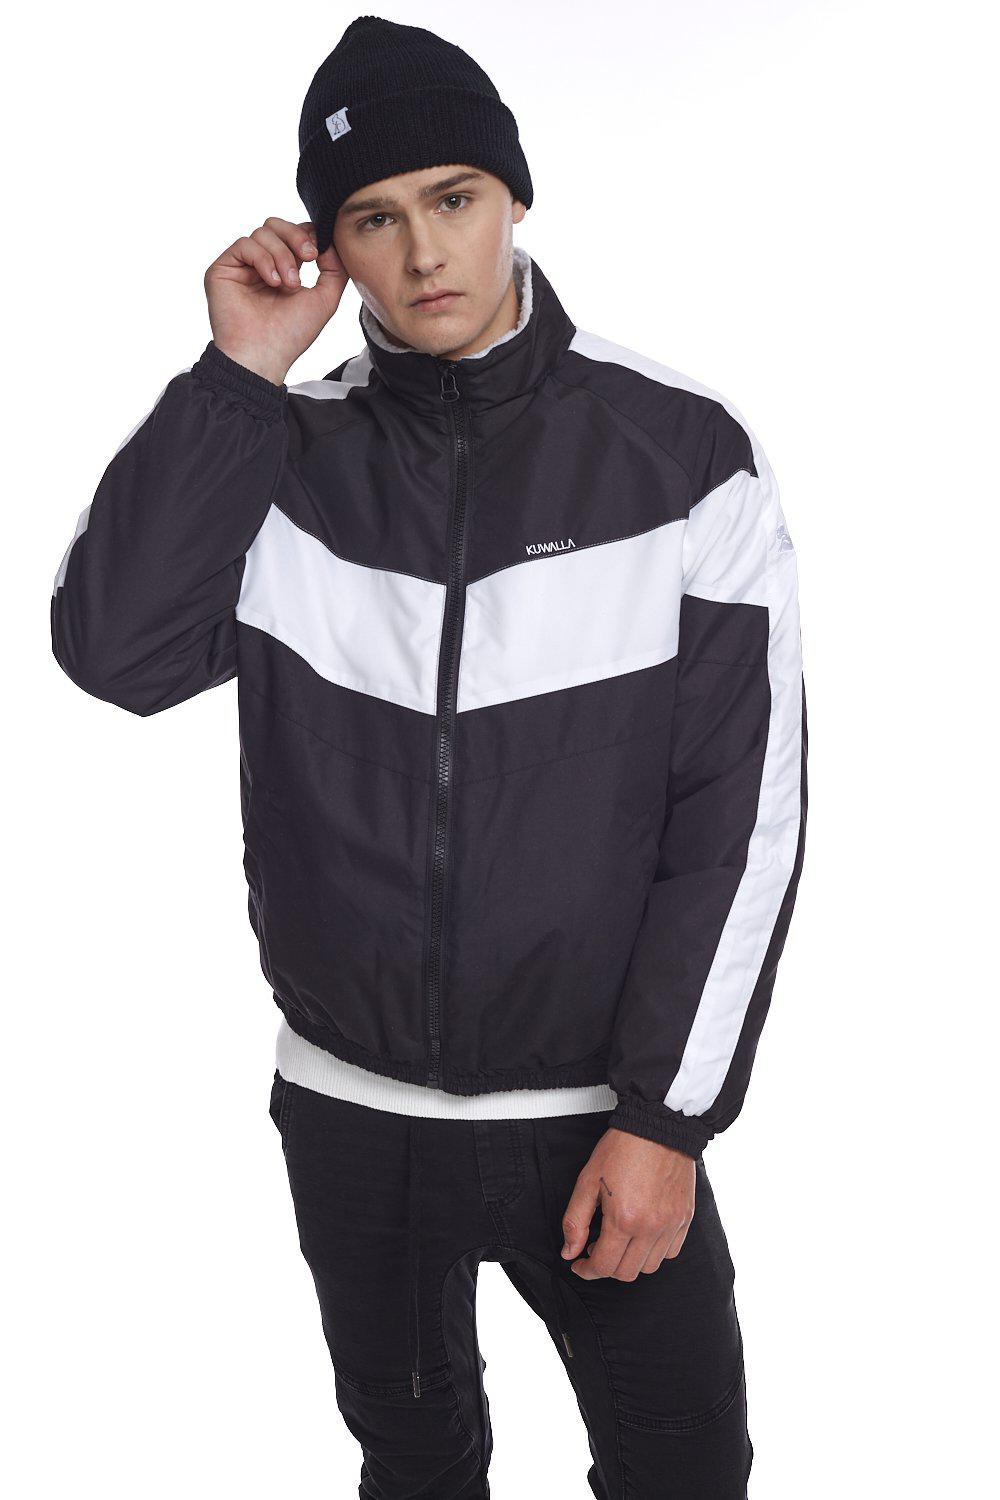 Kuwalla Tee Winter Track Jacket-The Trendy Walrus